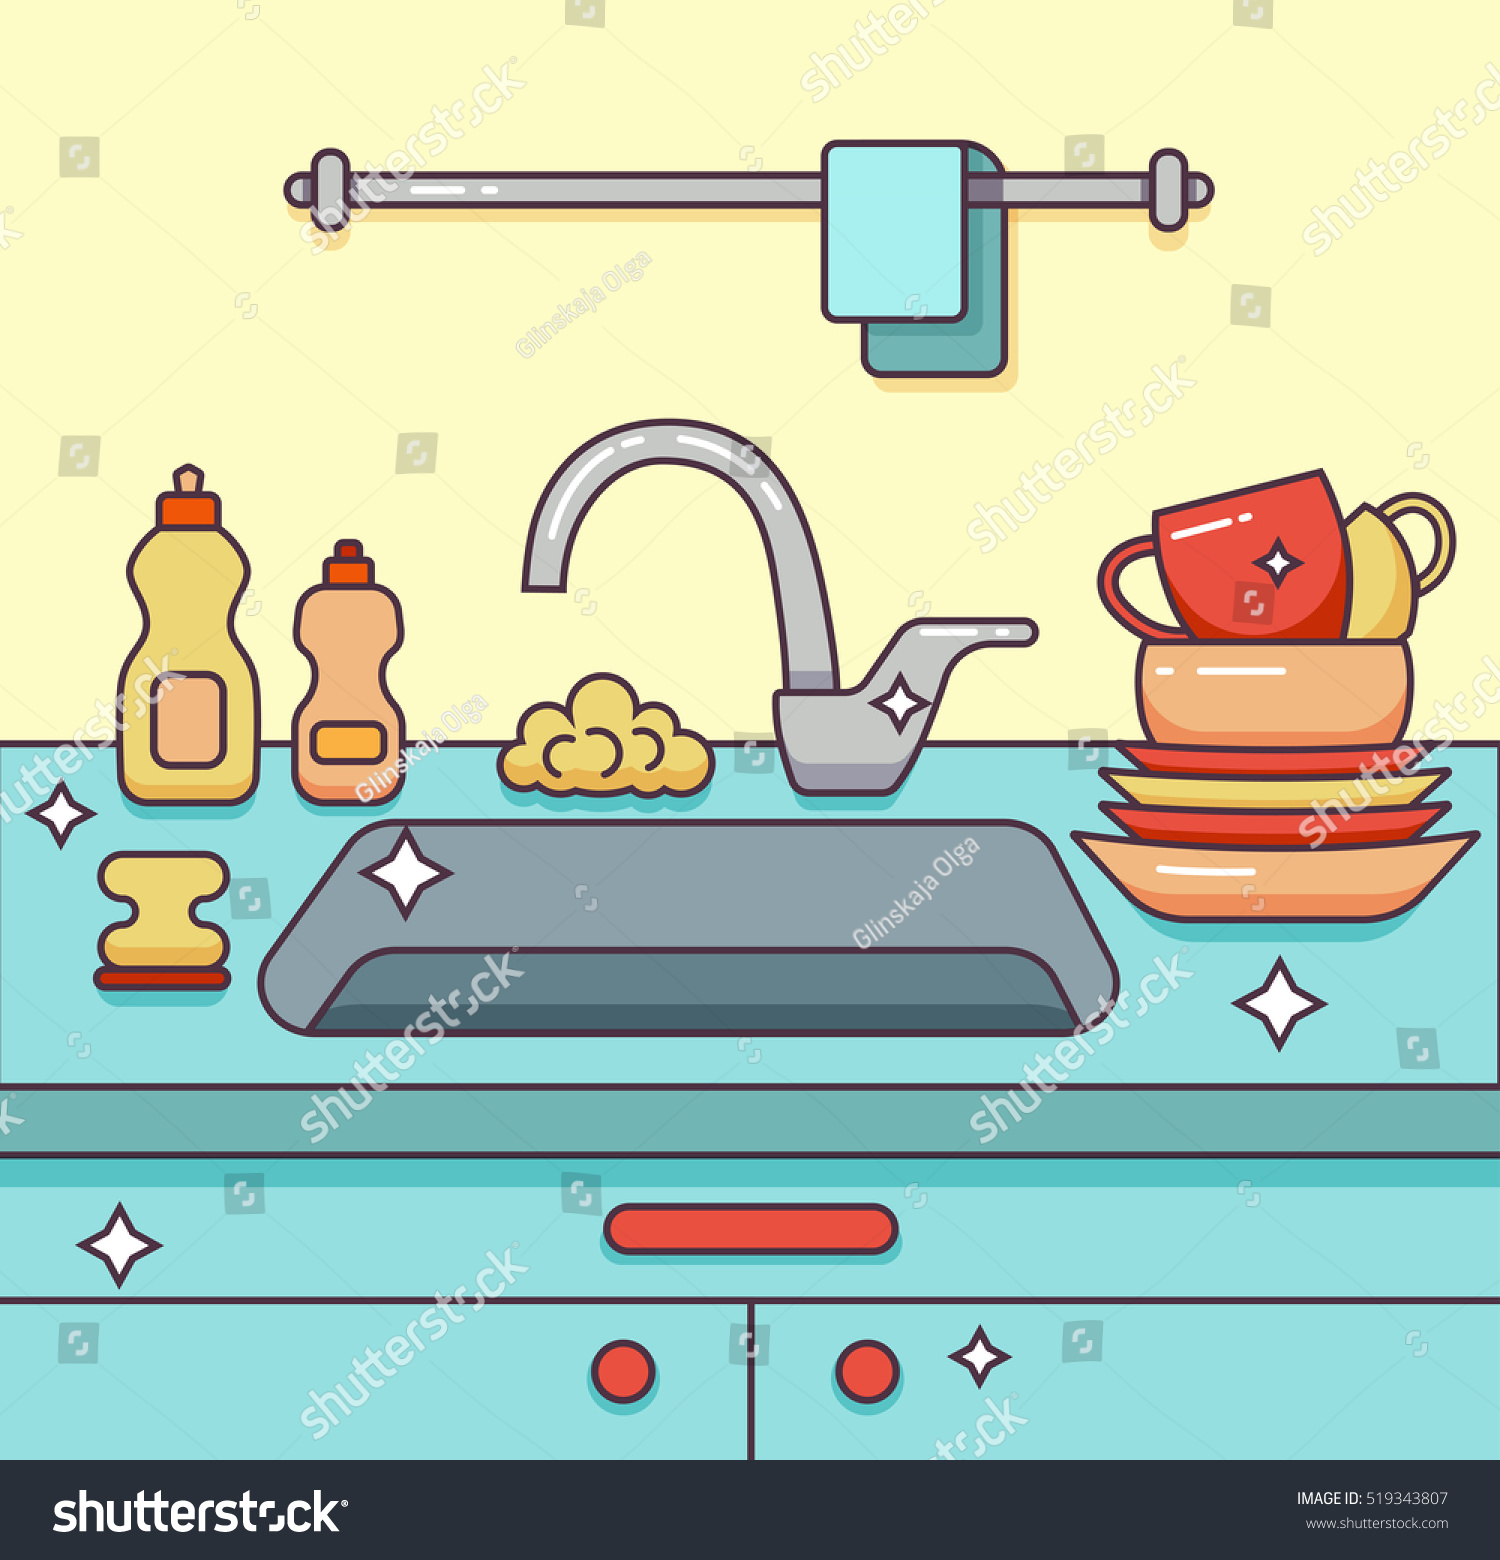 Cartoon Kitchen Sink ~ Kitchen sink kitchenware dishes utensil towel stock vector